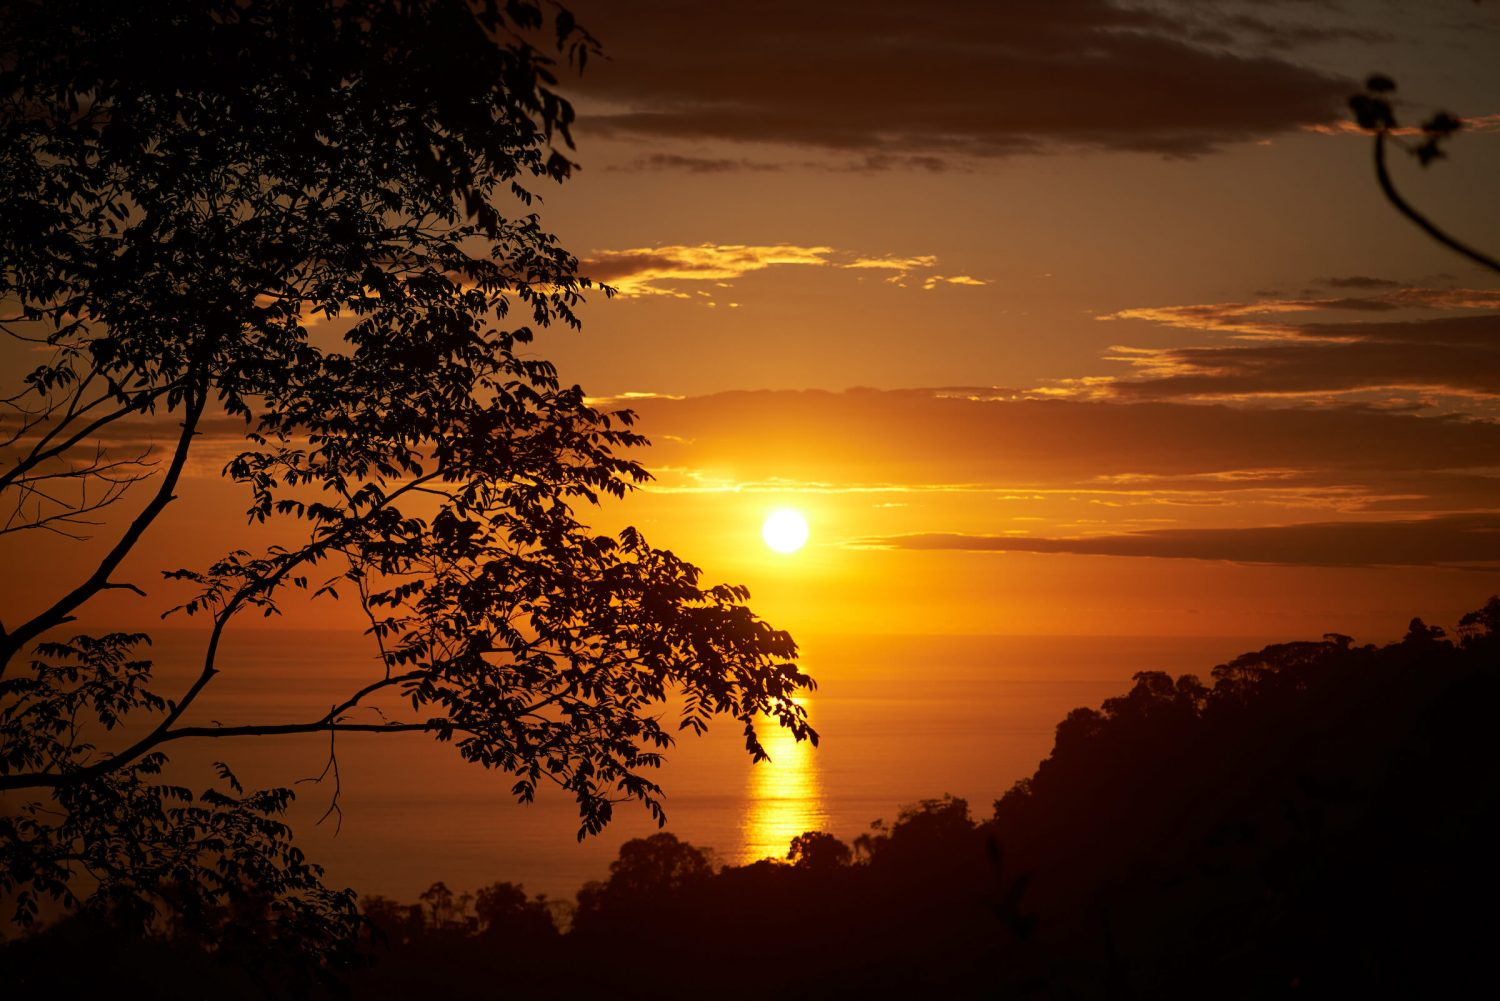 Another amazing sunset at the Rancho Pacifico Costa Rica luxury resort.